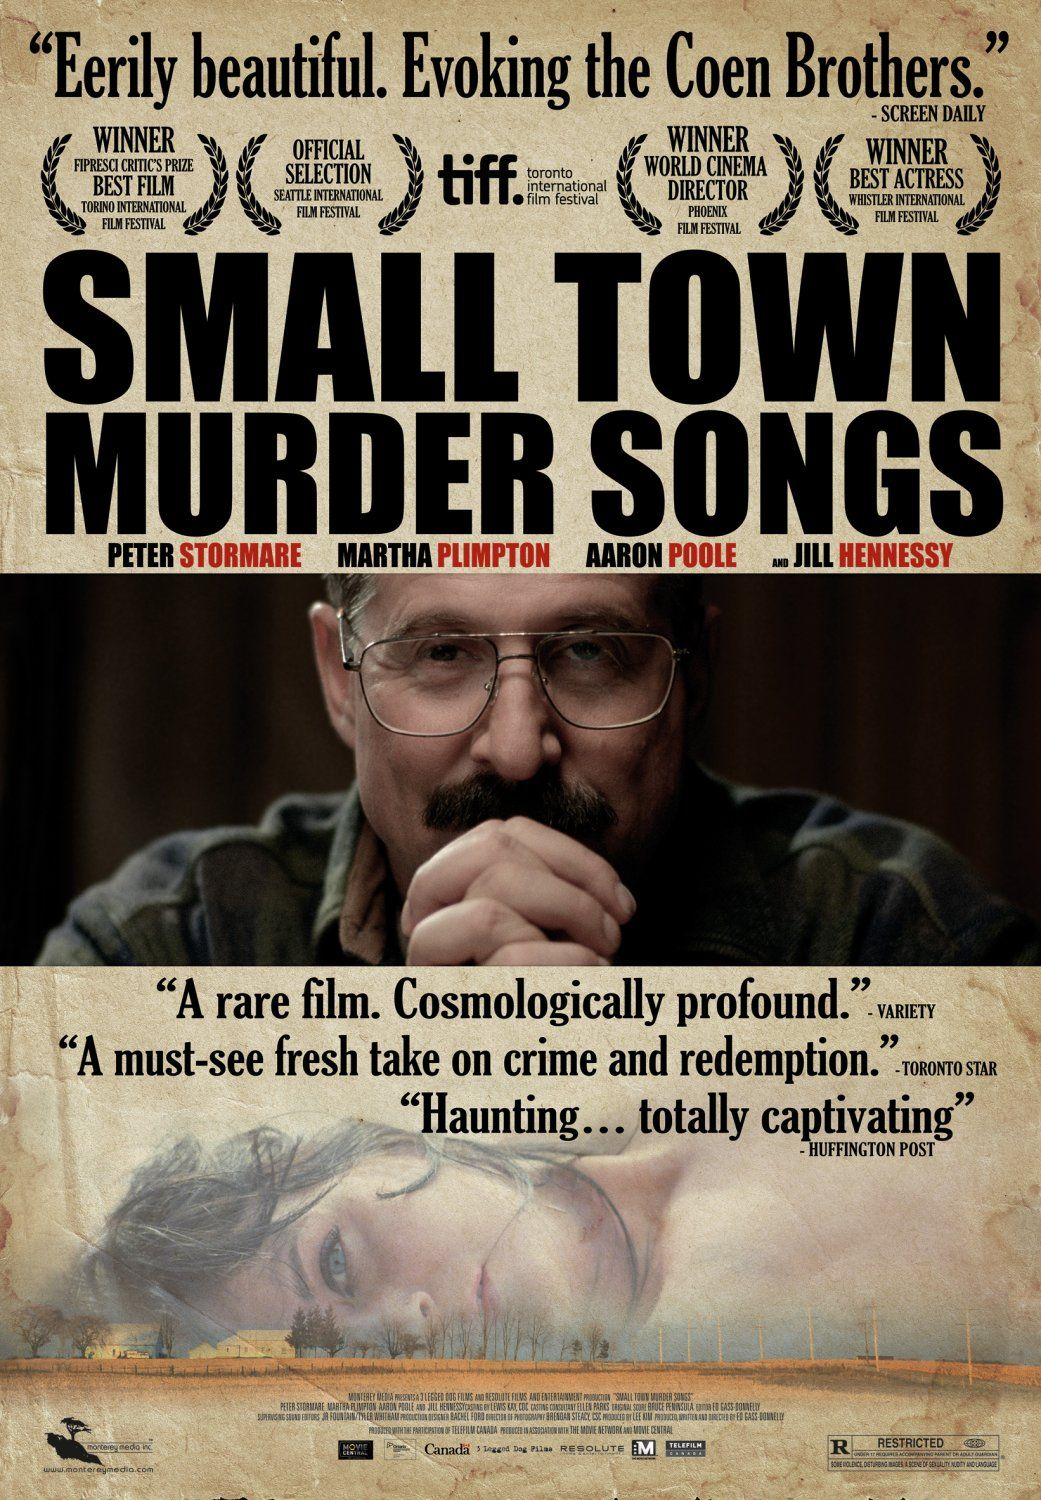 small town murder songs jill hennessy martha plimpton small town murder songs imdb a modern gothic tale of crime and redemption about an aging police officer from a small ontario mennonite town who hides a